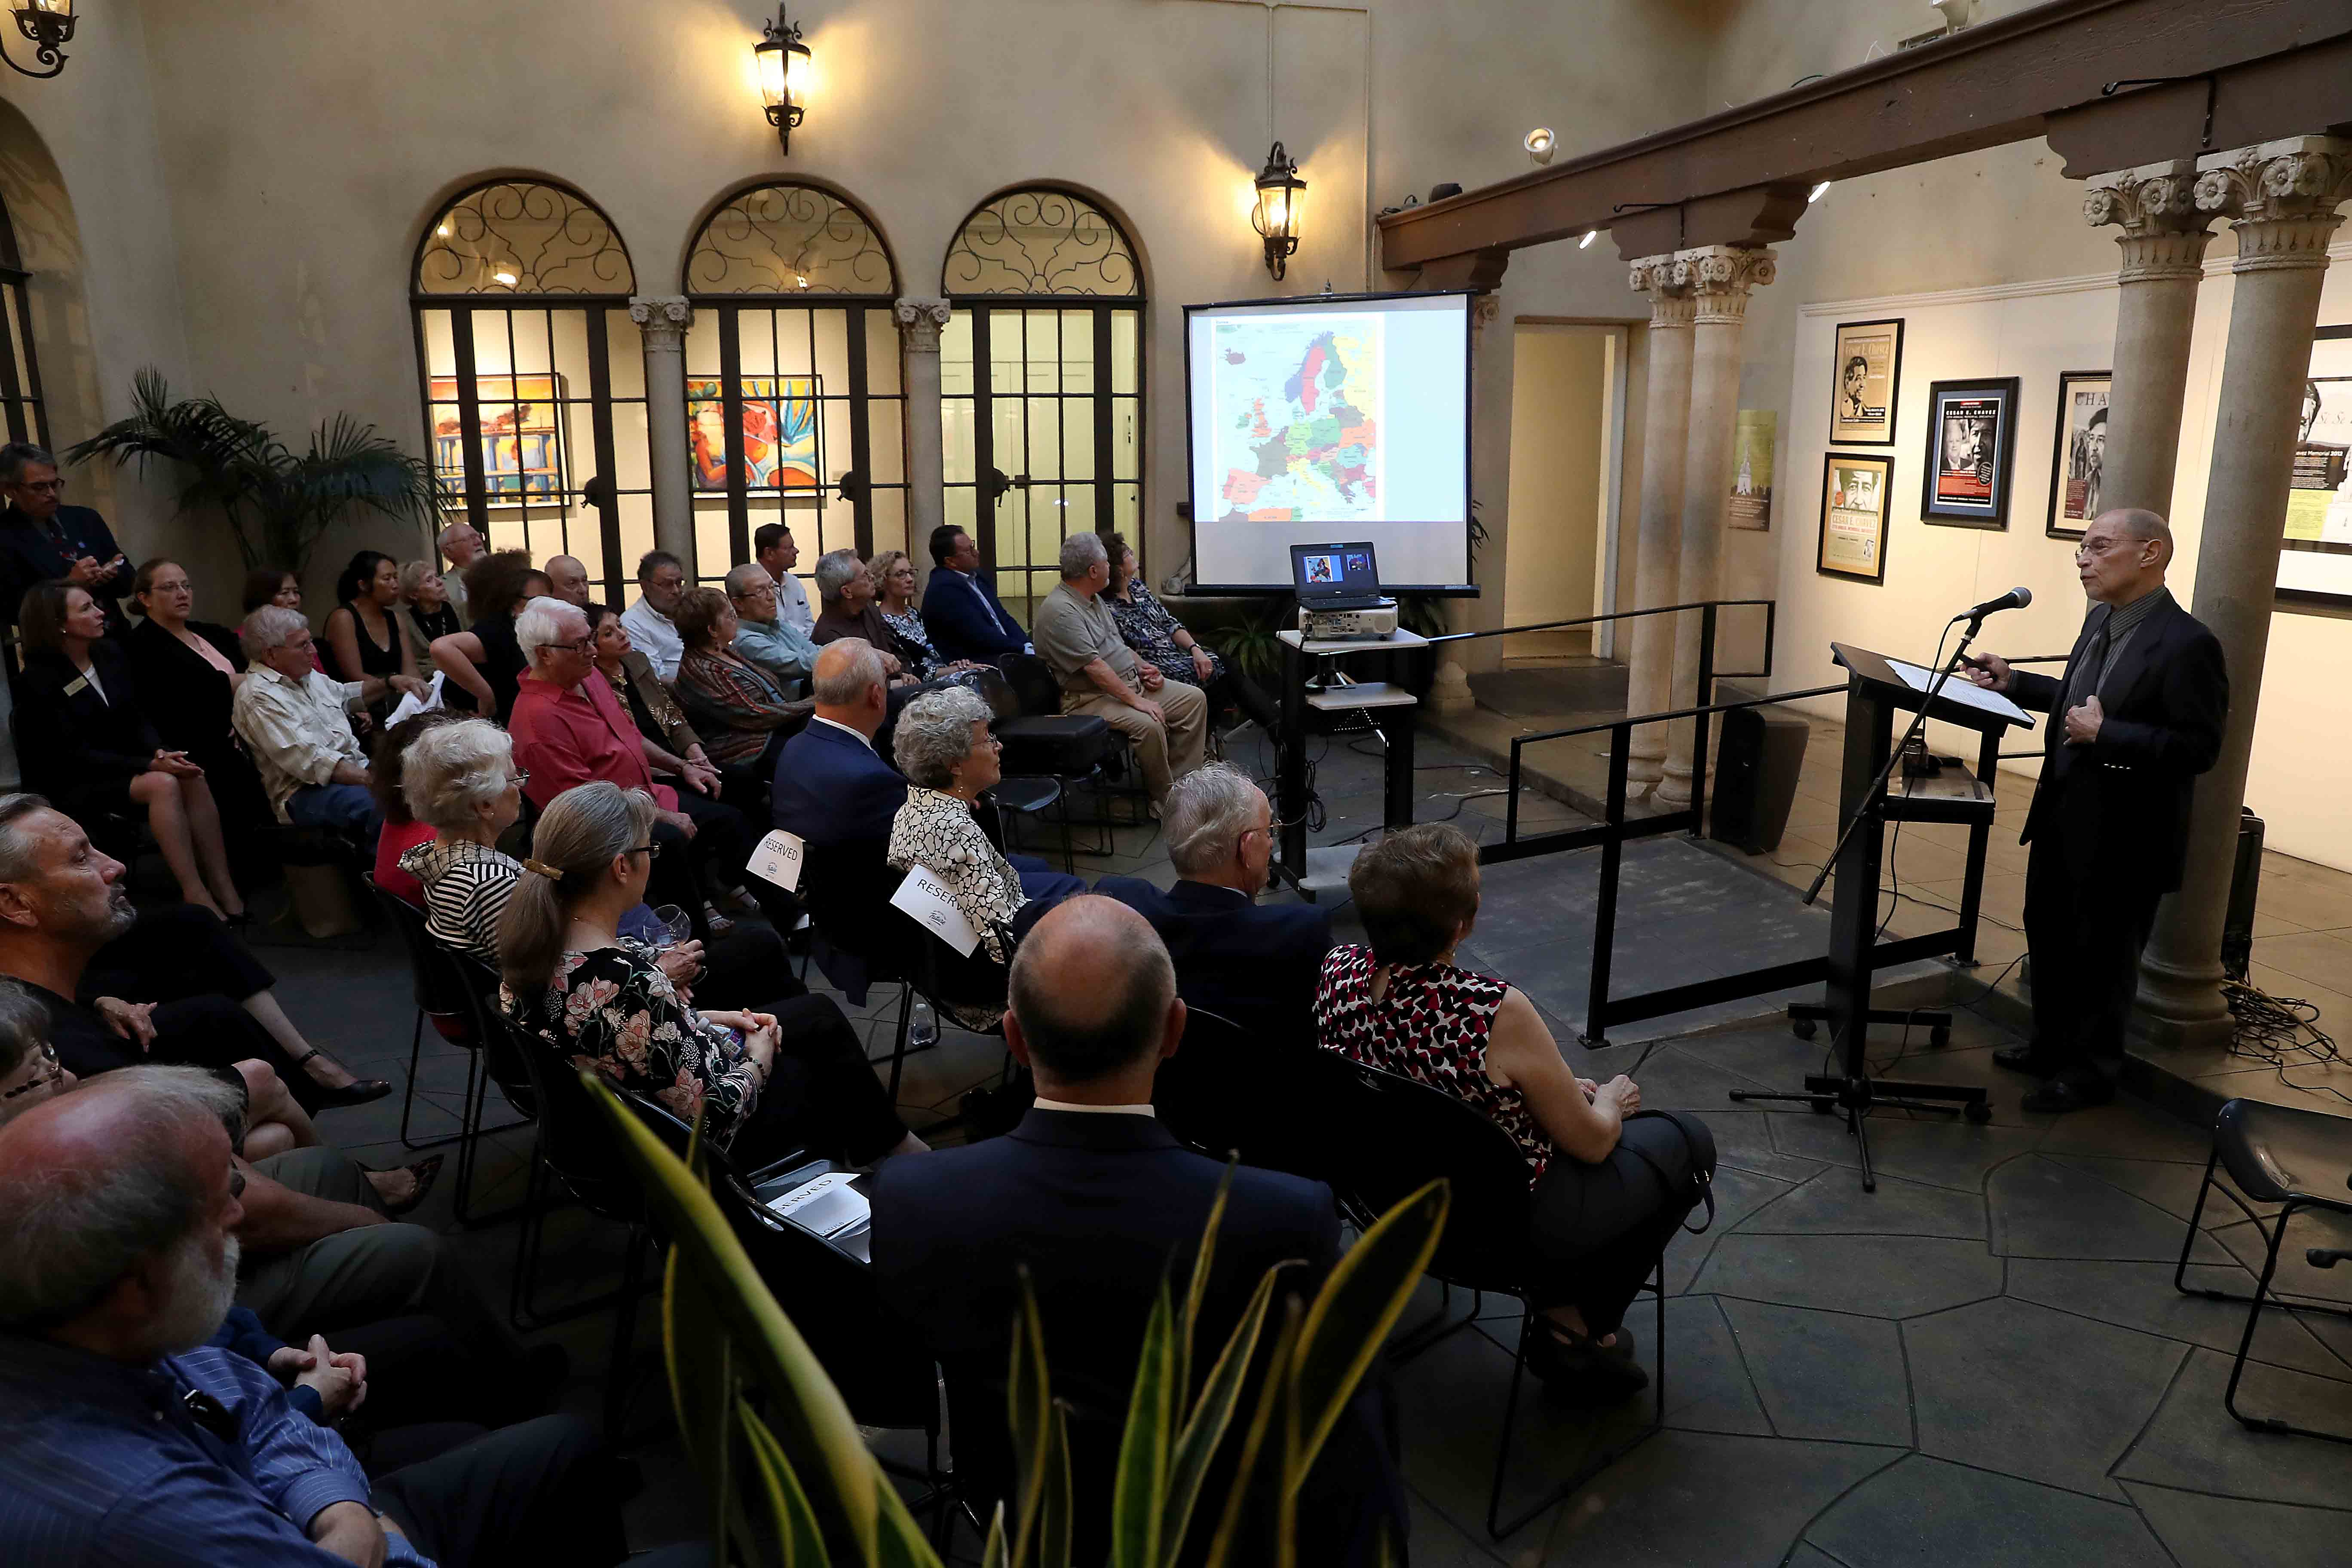 """""""Remnants of Jewish Life in Post-Holocaust Europe: A Personal Journey,"""" was given twice, May 13 at Cal State San Bernardino's Palm Desert Campus in Palm Desert, and May 14 at the Riverside Art Musuem in Riverside."""